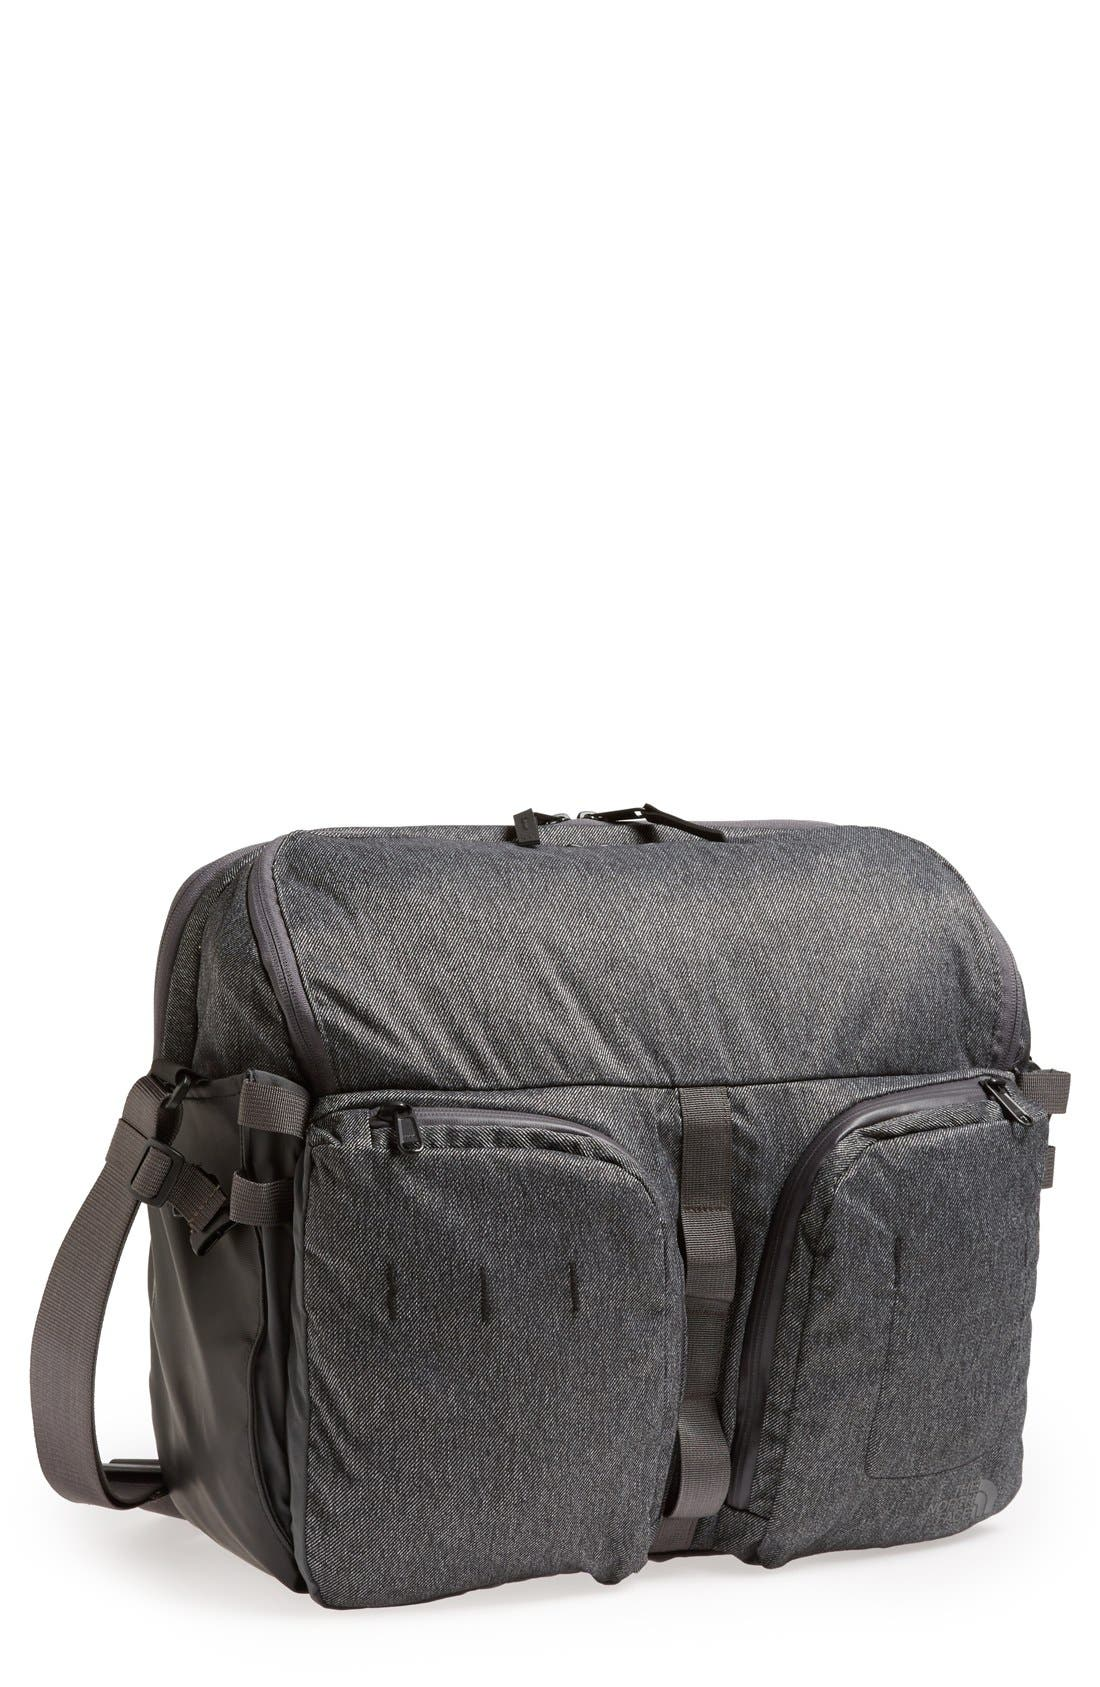 Main Image - The North Face 'Westing' Messenger Bag